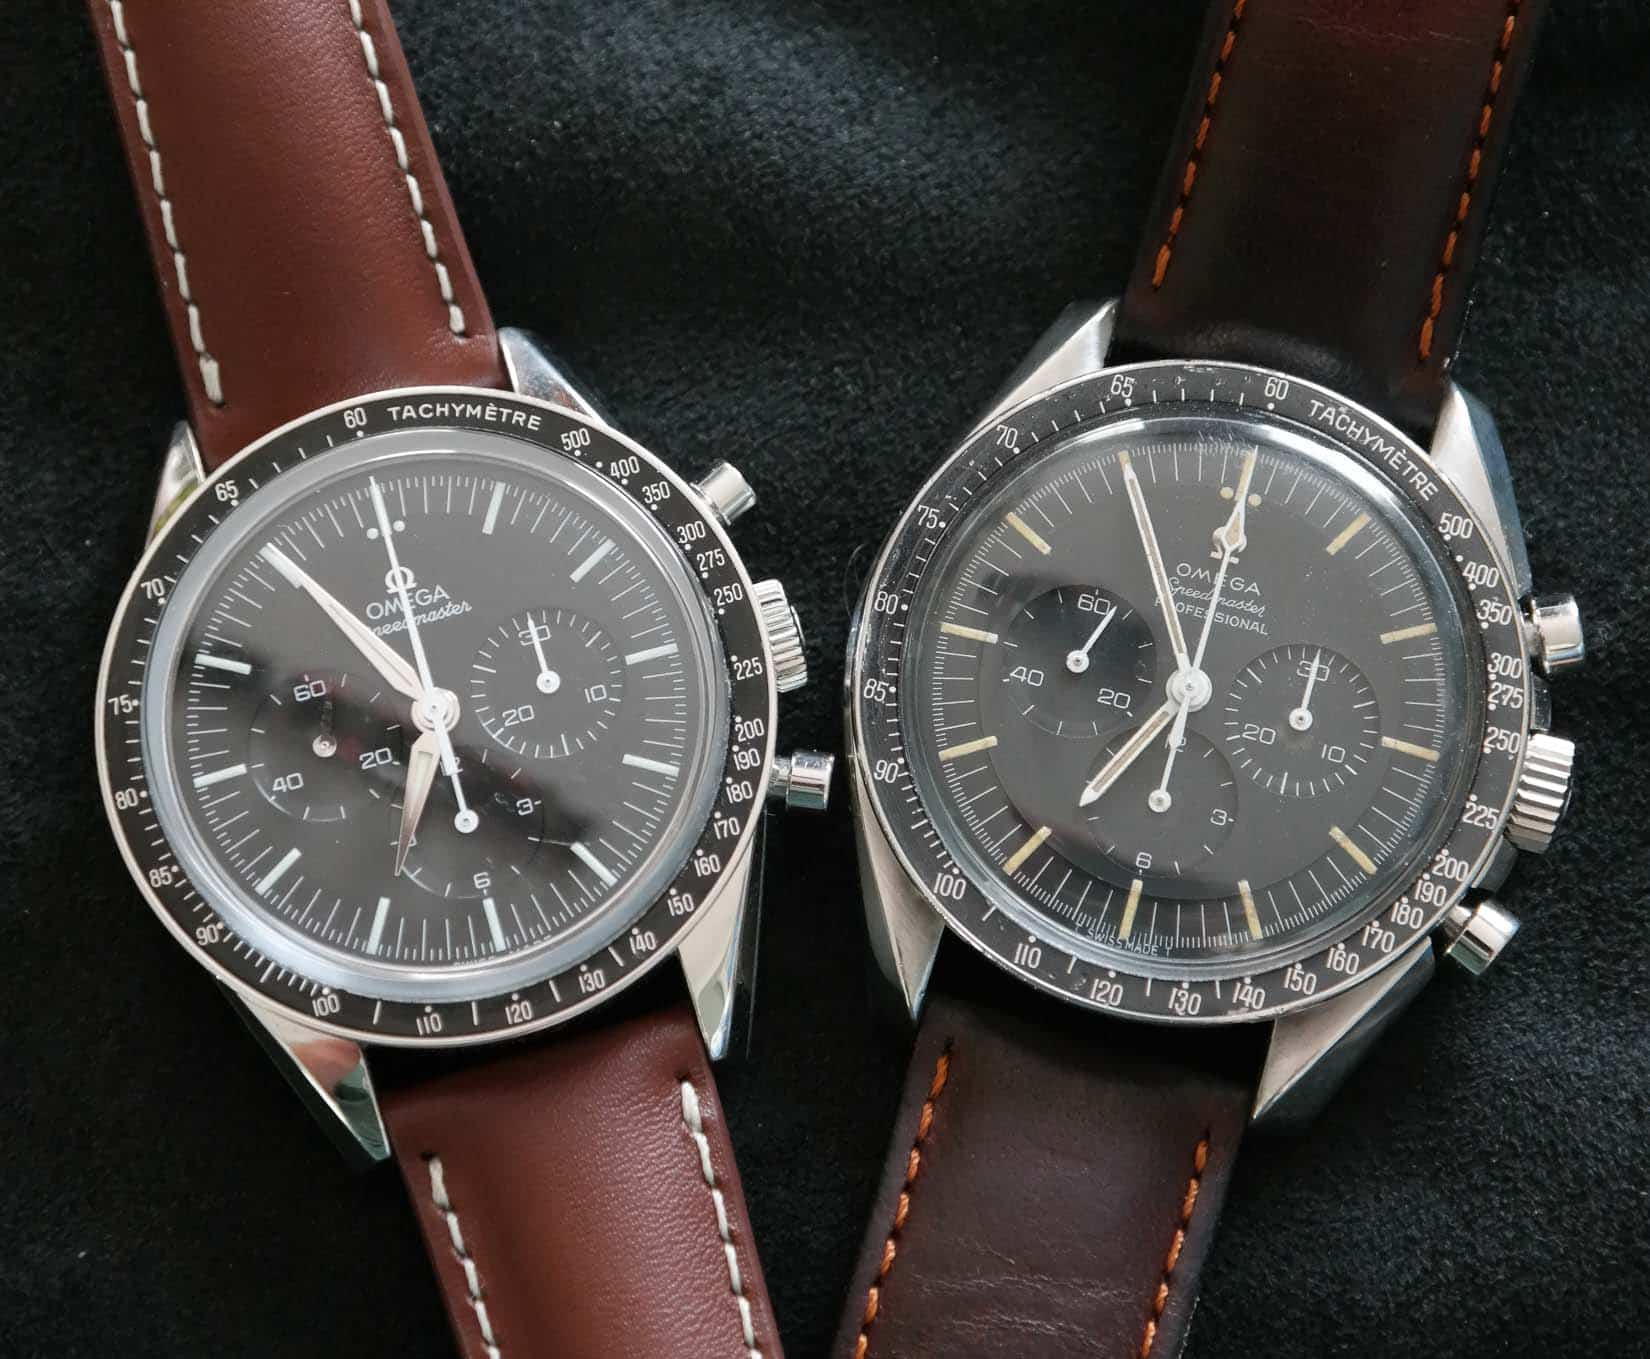 Speedy Tuesday – Sharing A Reader's Speedmaster Story